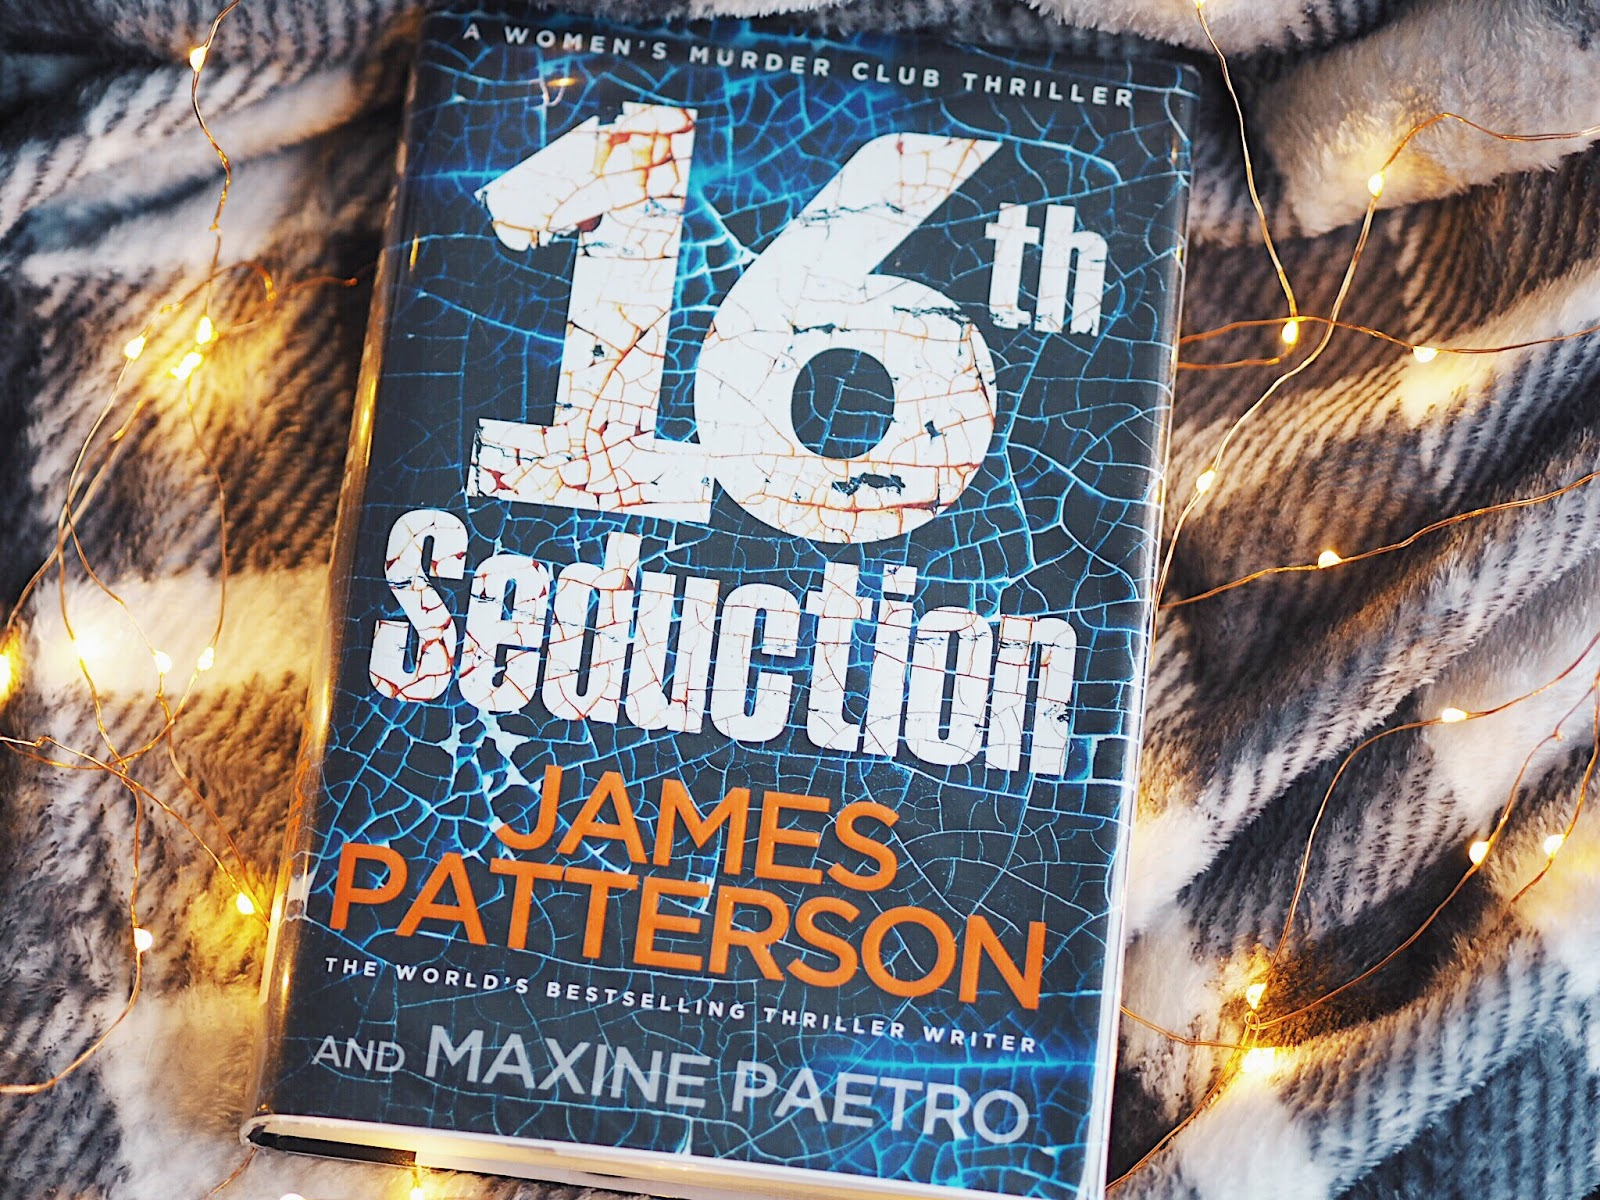 16th seduction james patterson